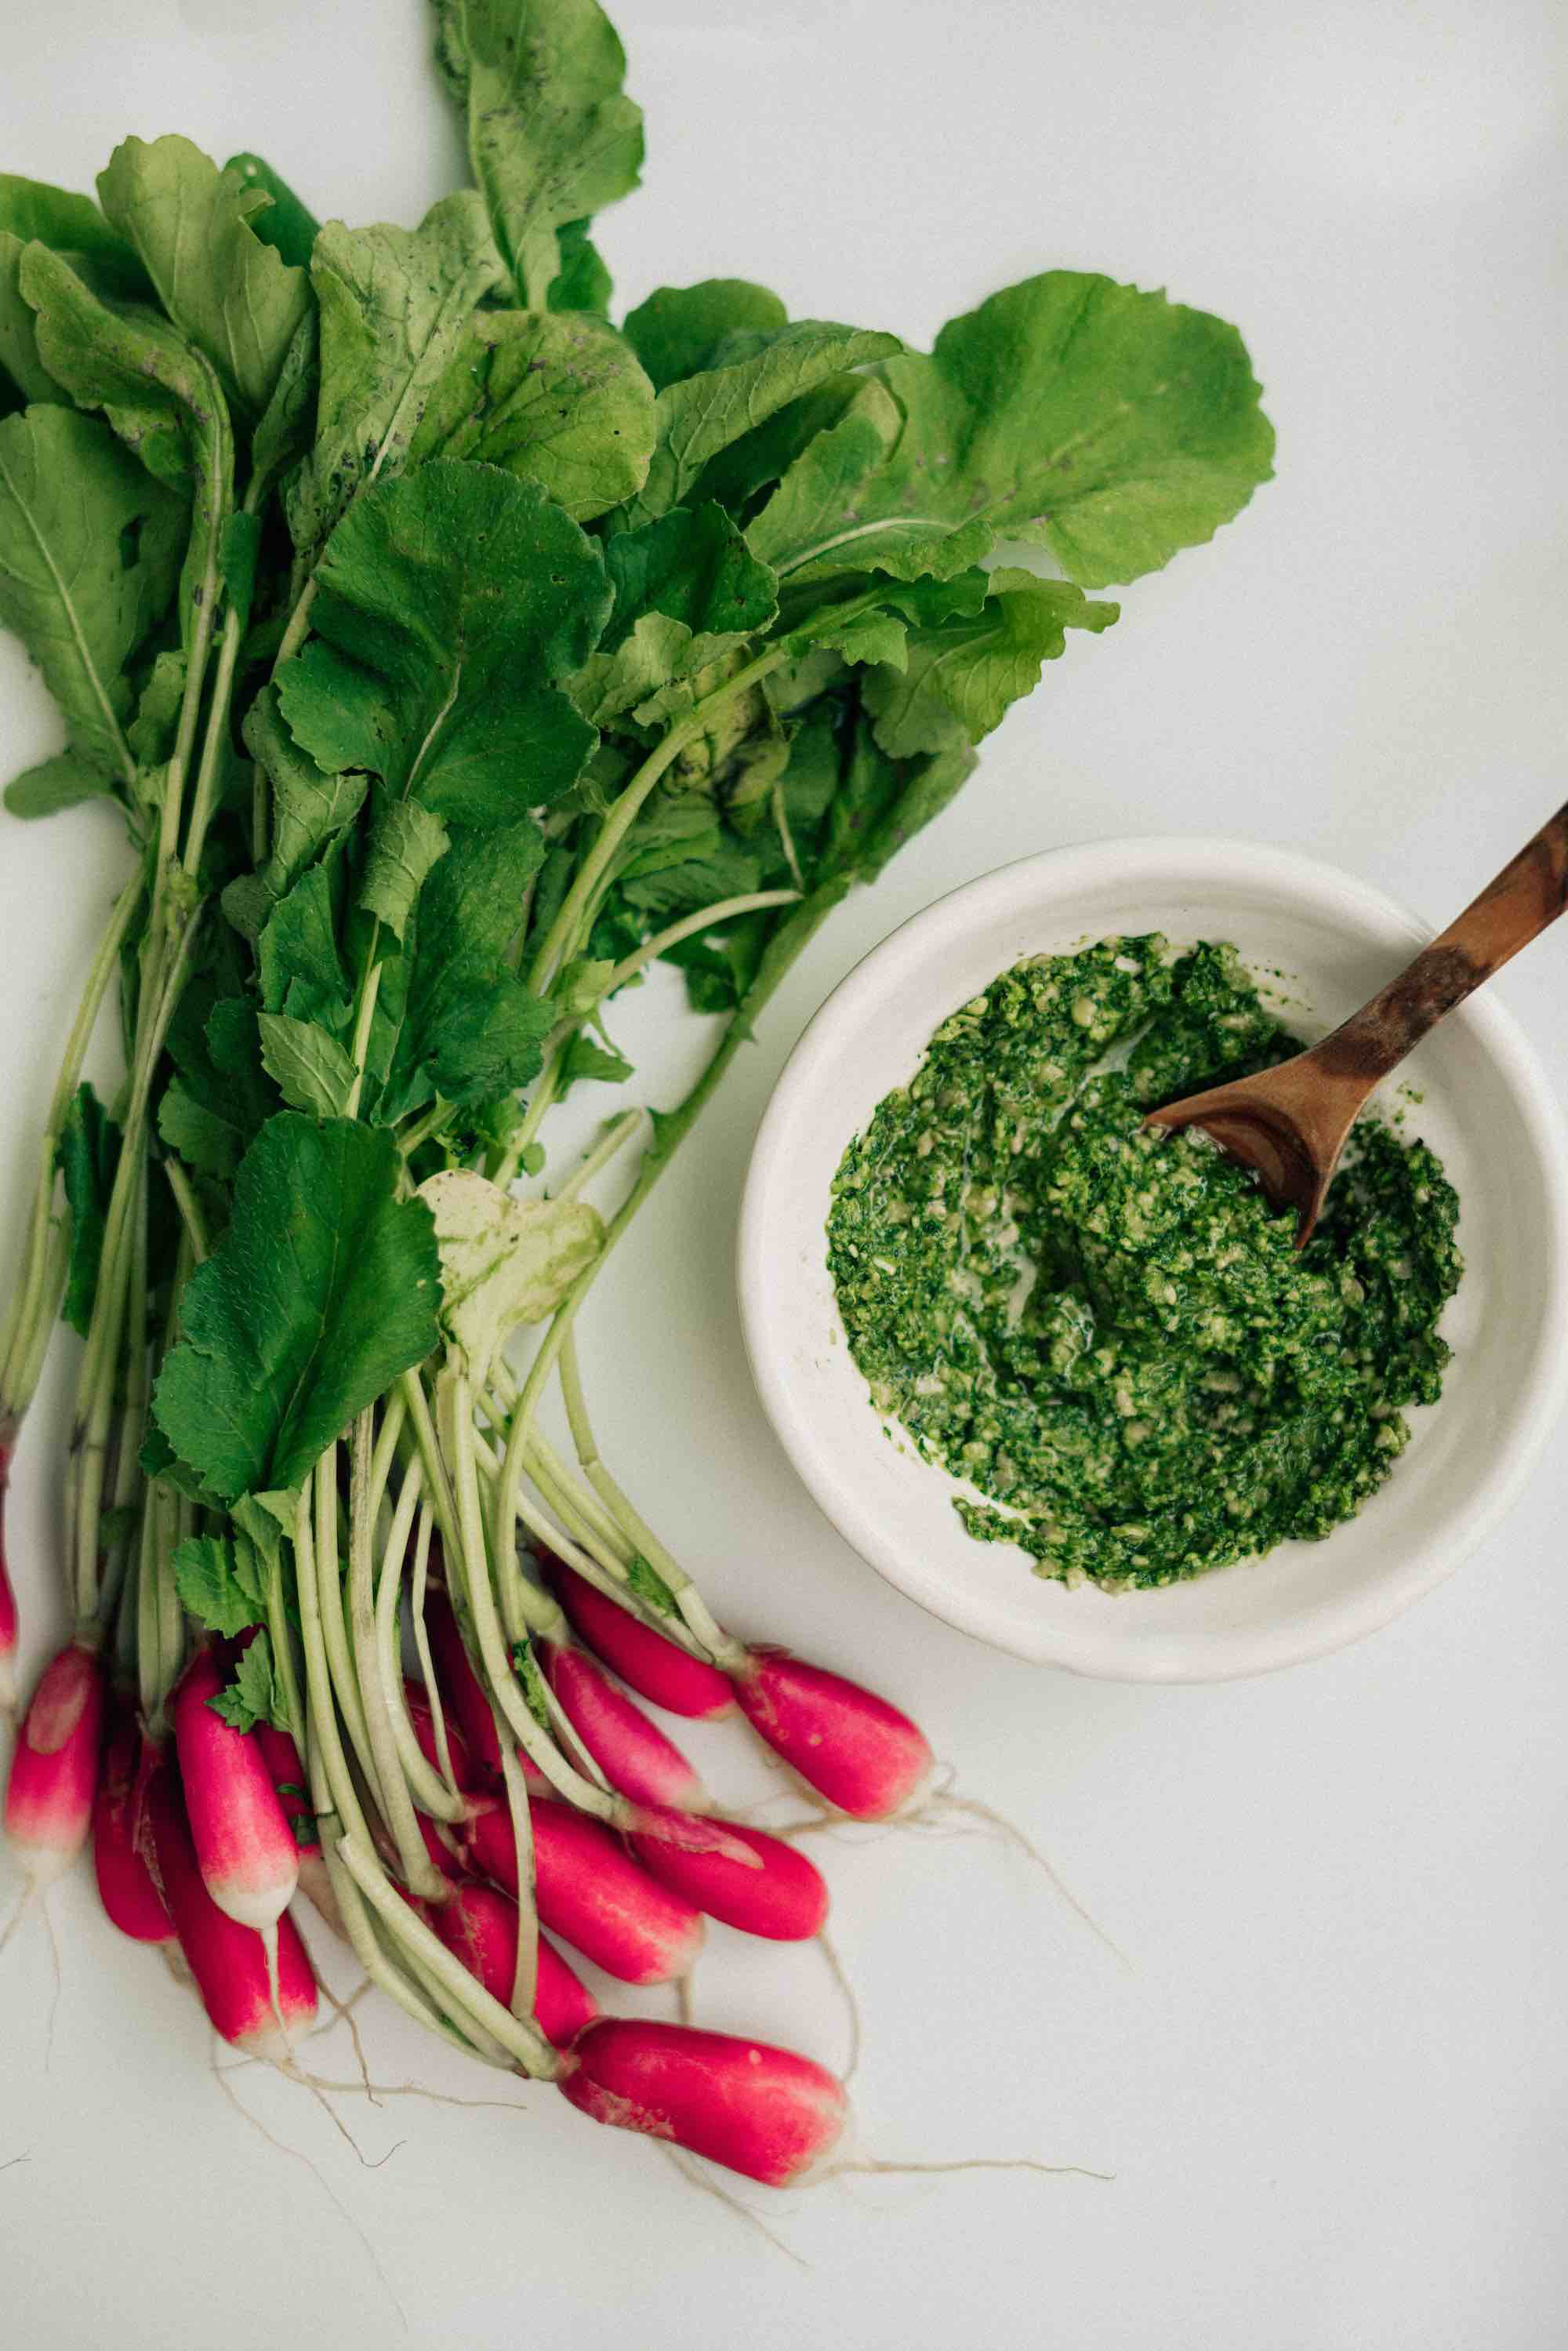 5 Ingredient Homemade Radish Greens Pesto Recipe